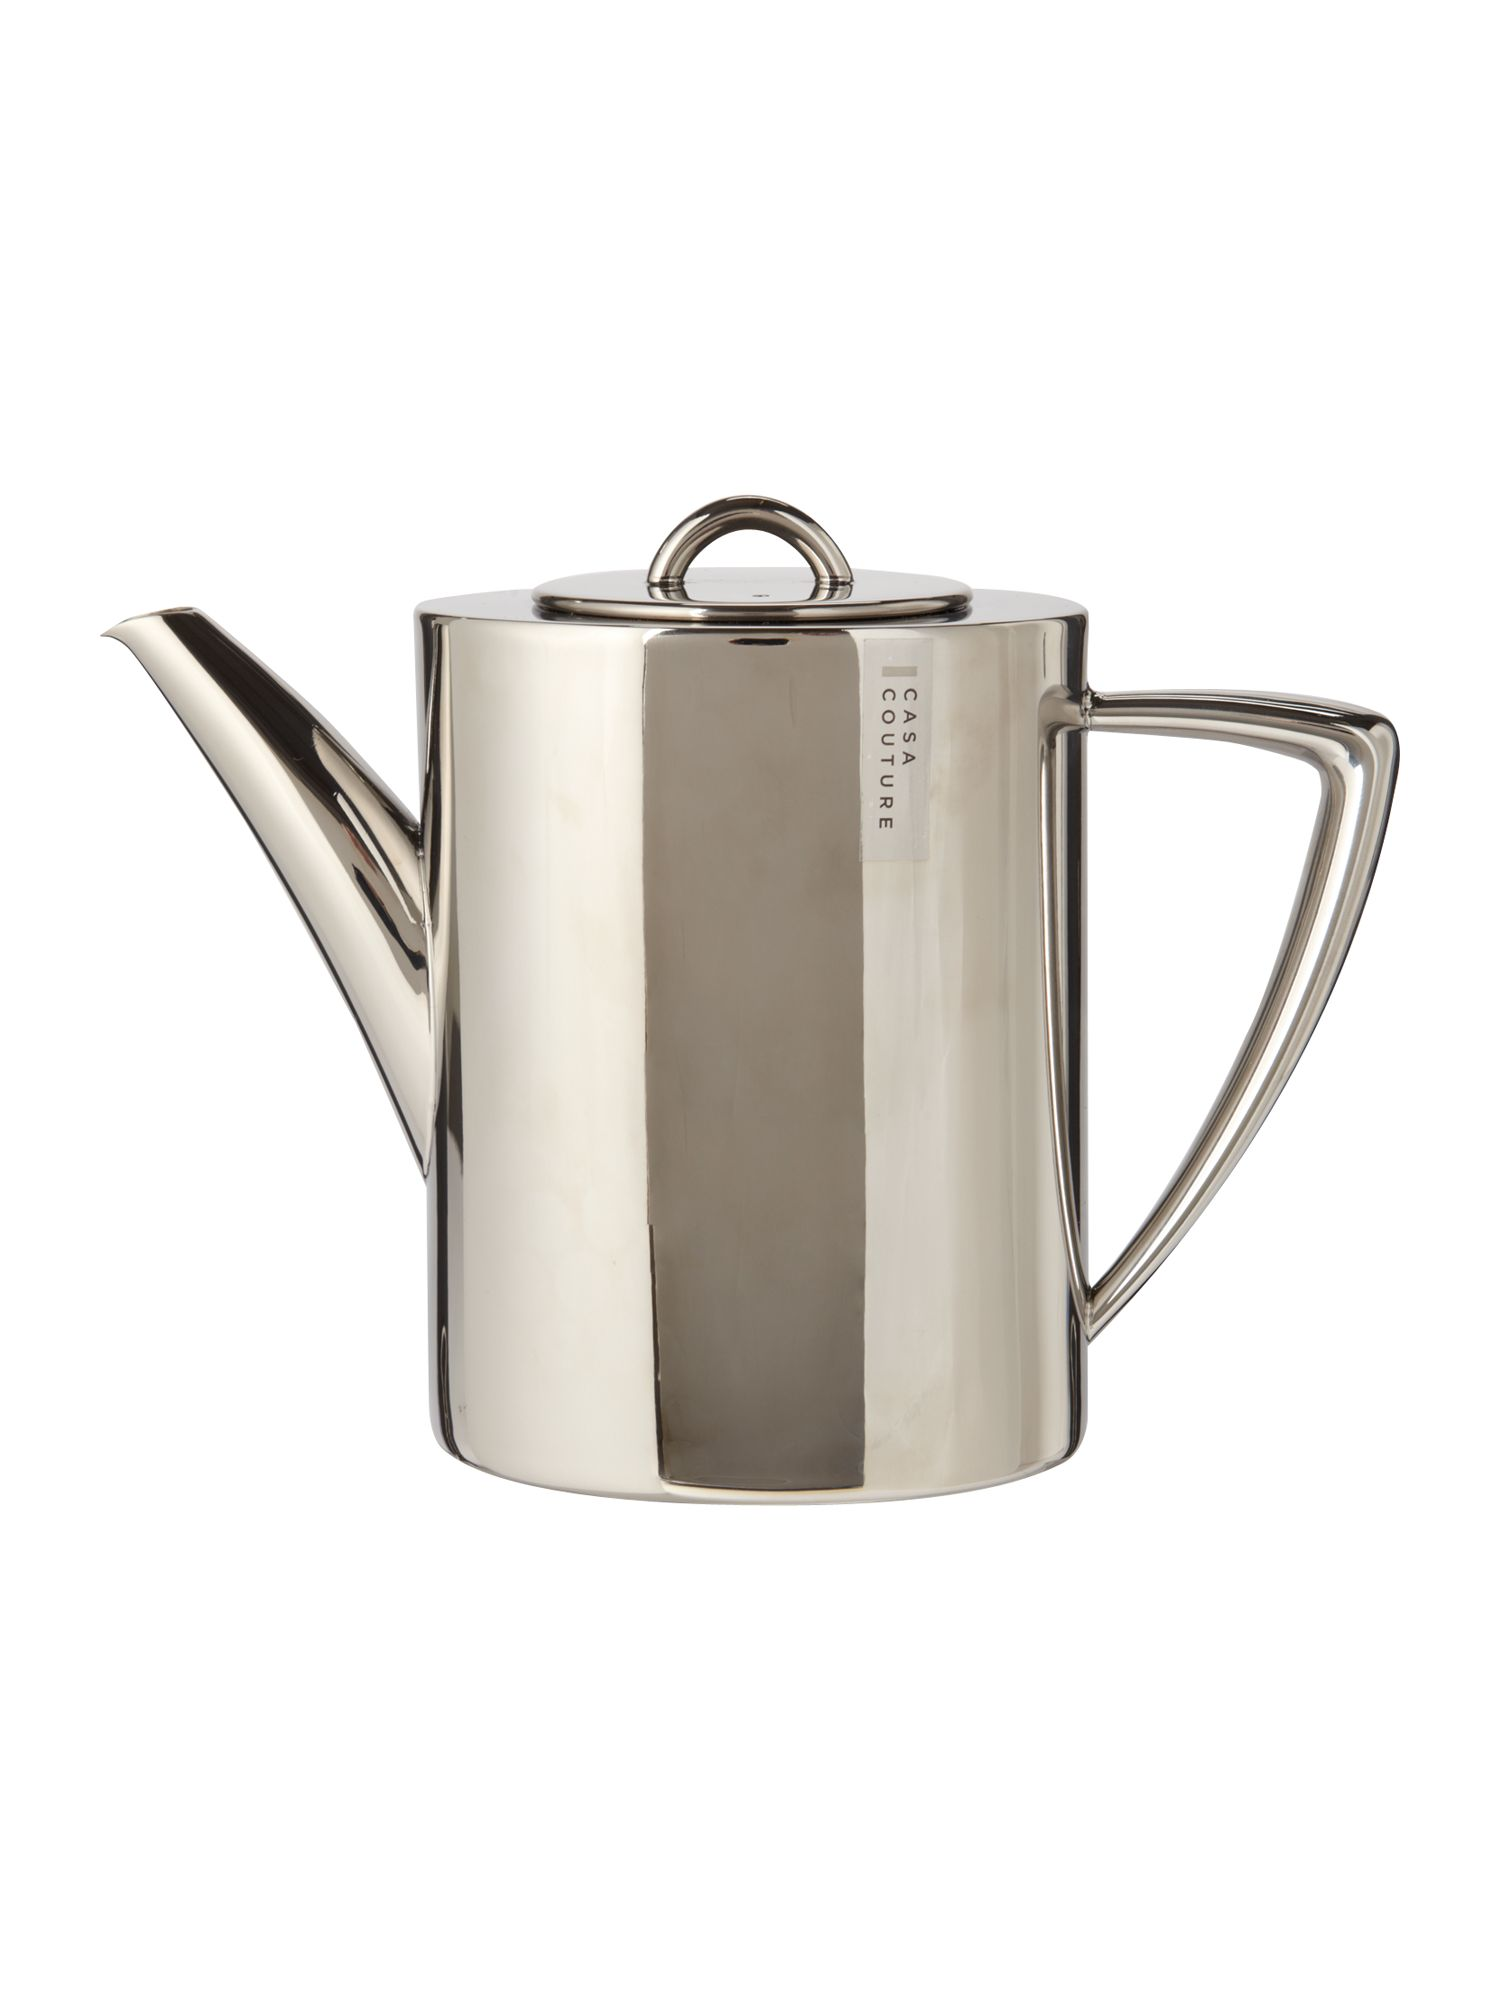 Dorchester metal coffee pot